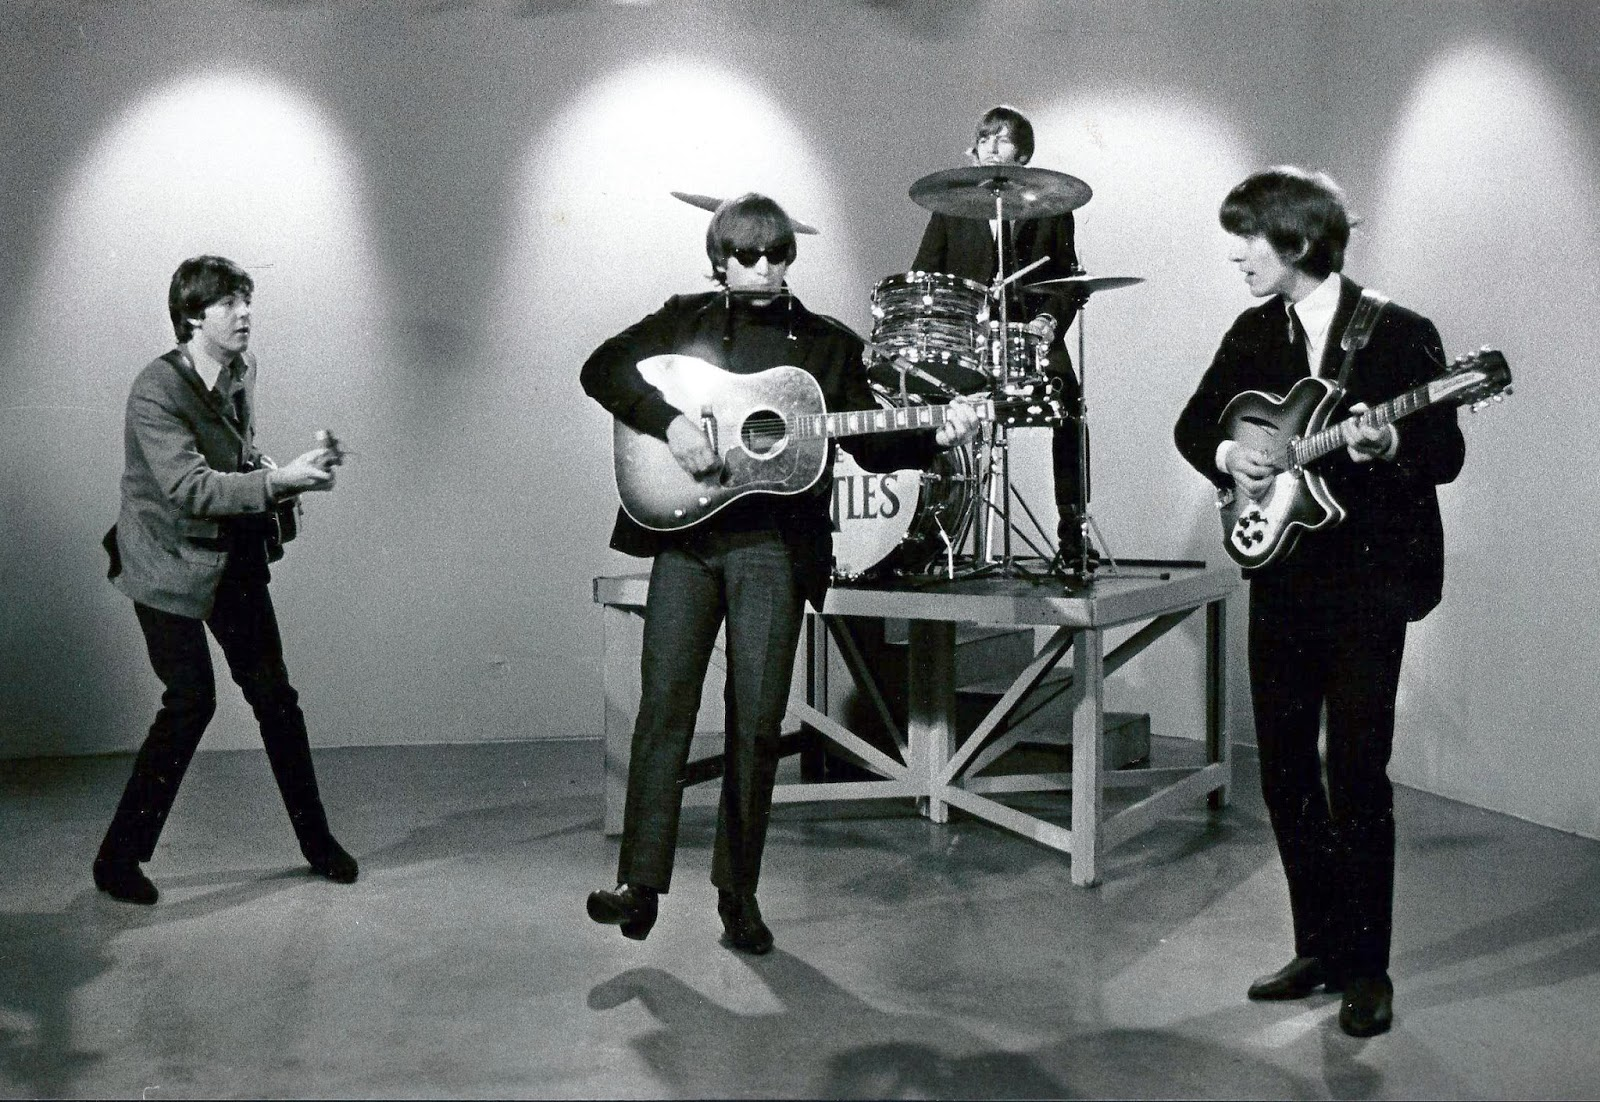 The Daily Beatle: The Beatles on Scene at 6:30